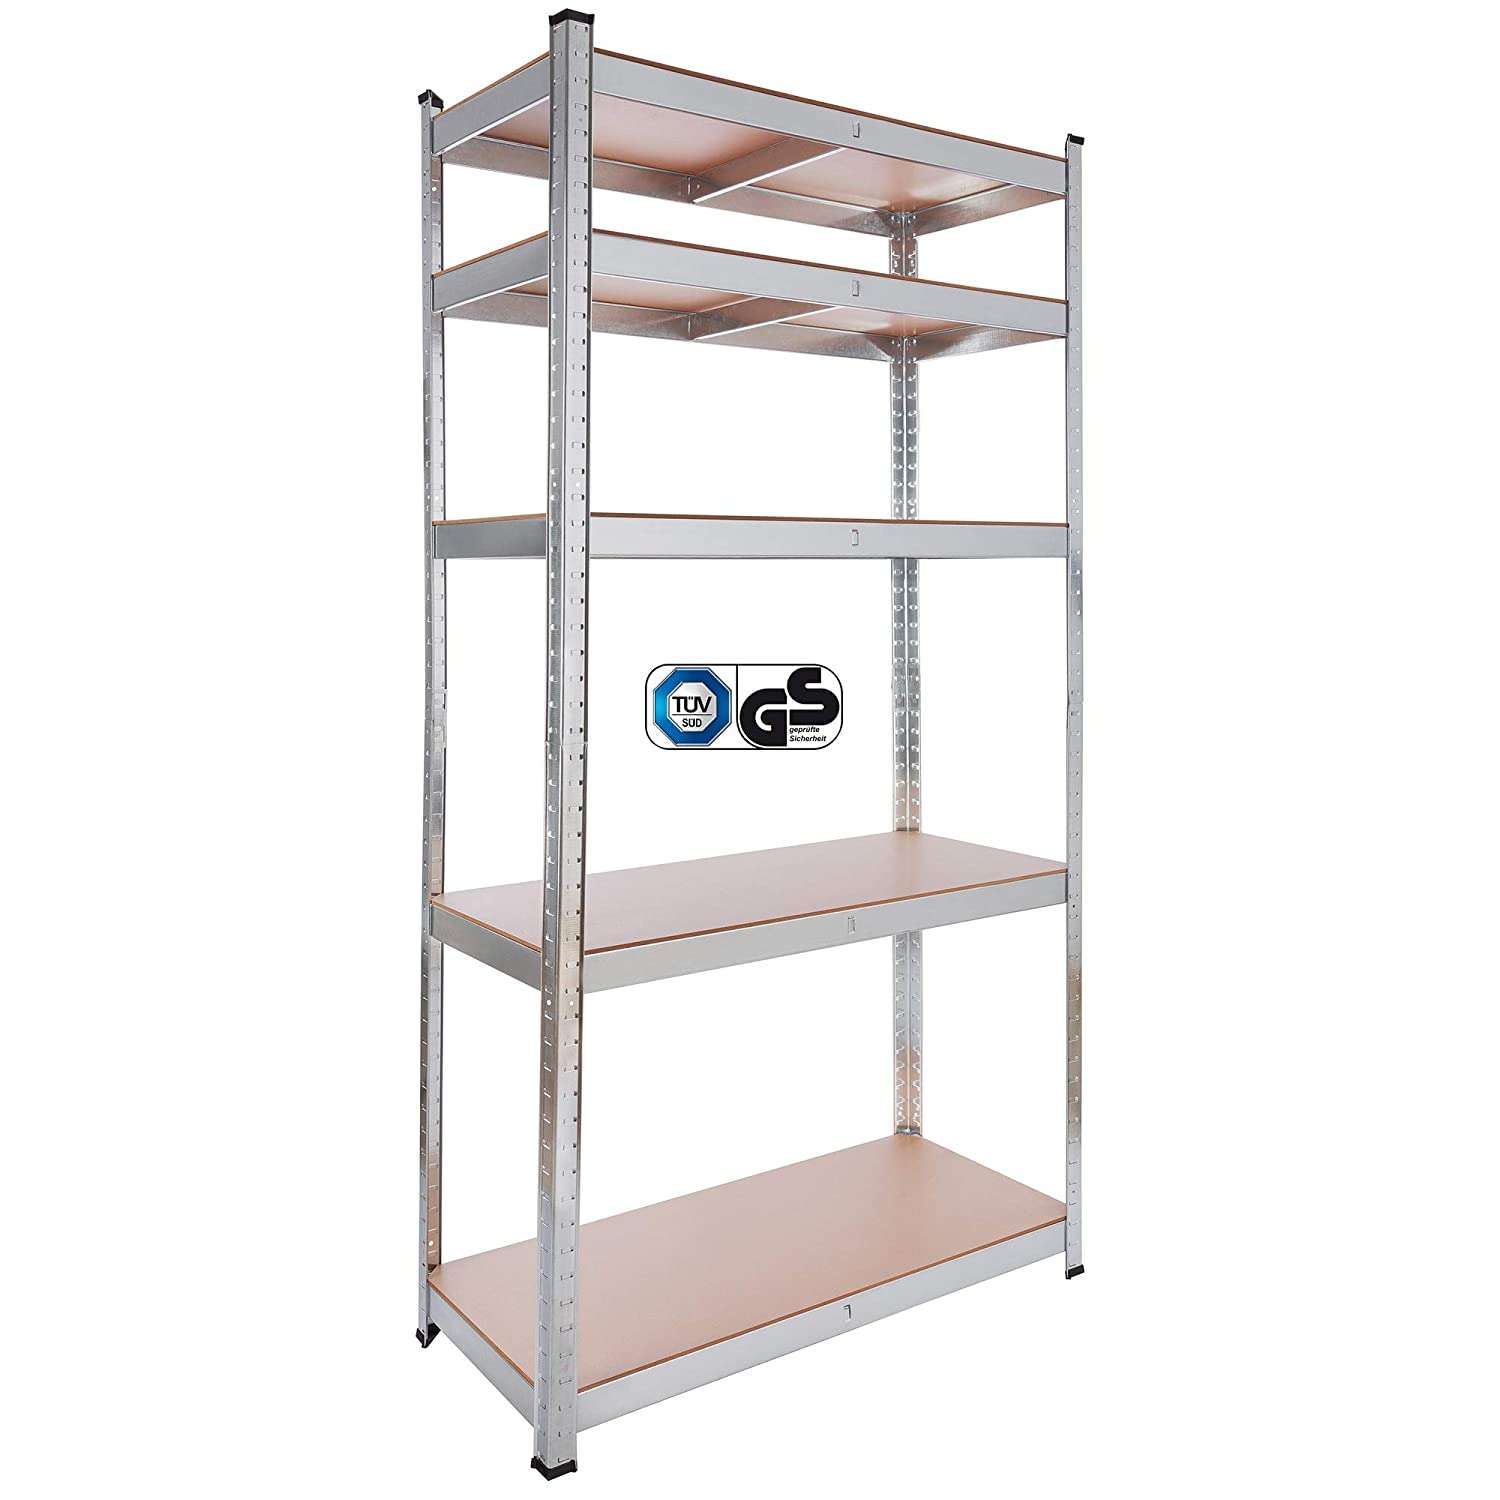 Arebos heavy duty shelving unit / 35.4 x 15.8 x 70.9 in (90 x 40 x 180 cm) / load capicity up to 1929 lbs (875 kg) / Easy Assembly Canbolat Vertriebs GmbH